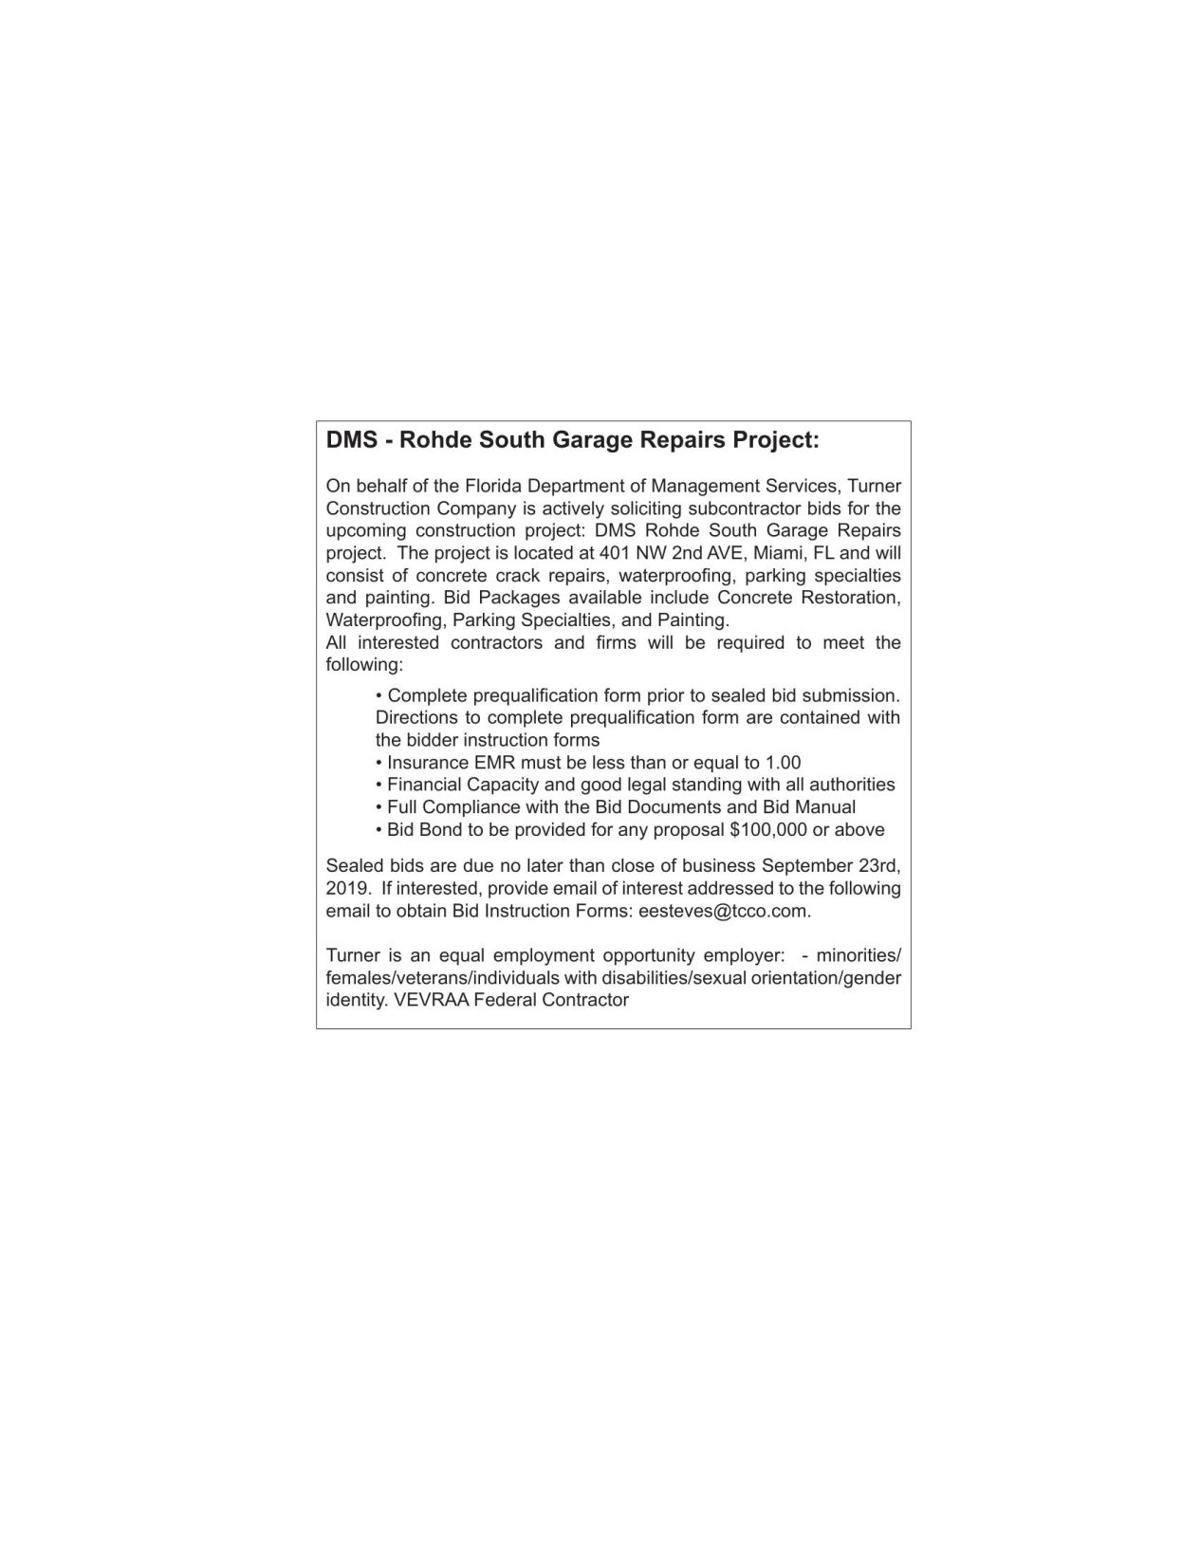 DMS - Rohde South Garage Repairs Project: